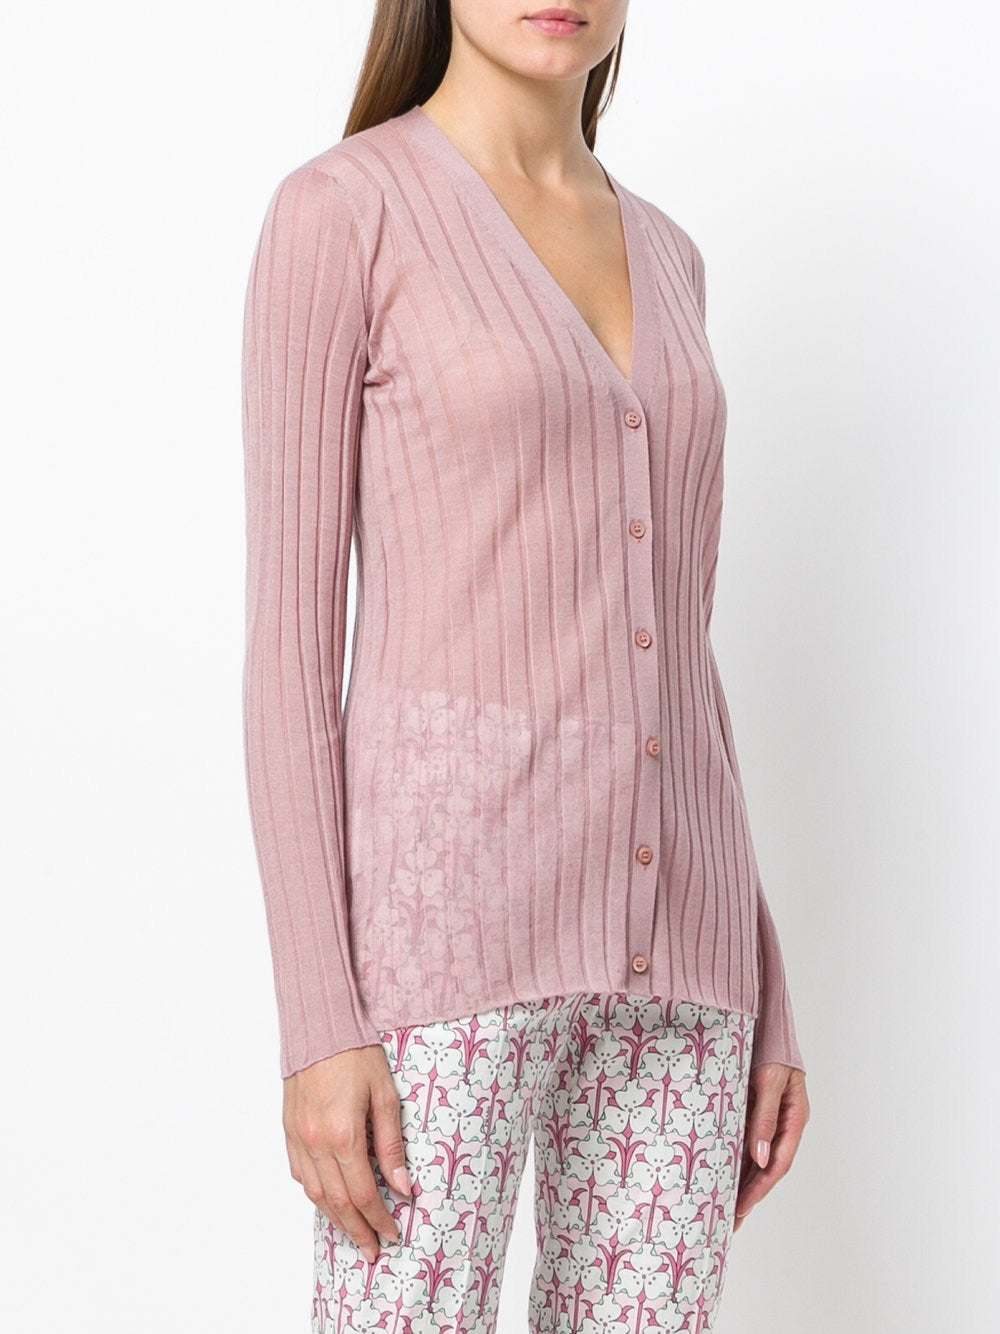 Women's-cashmere wool pink cardigan - THE UNIQUE FIT